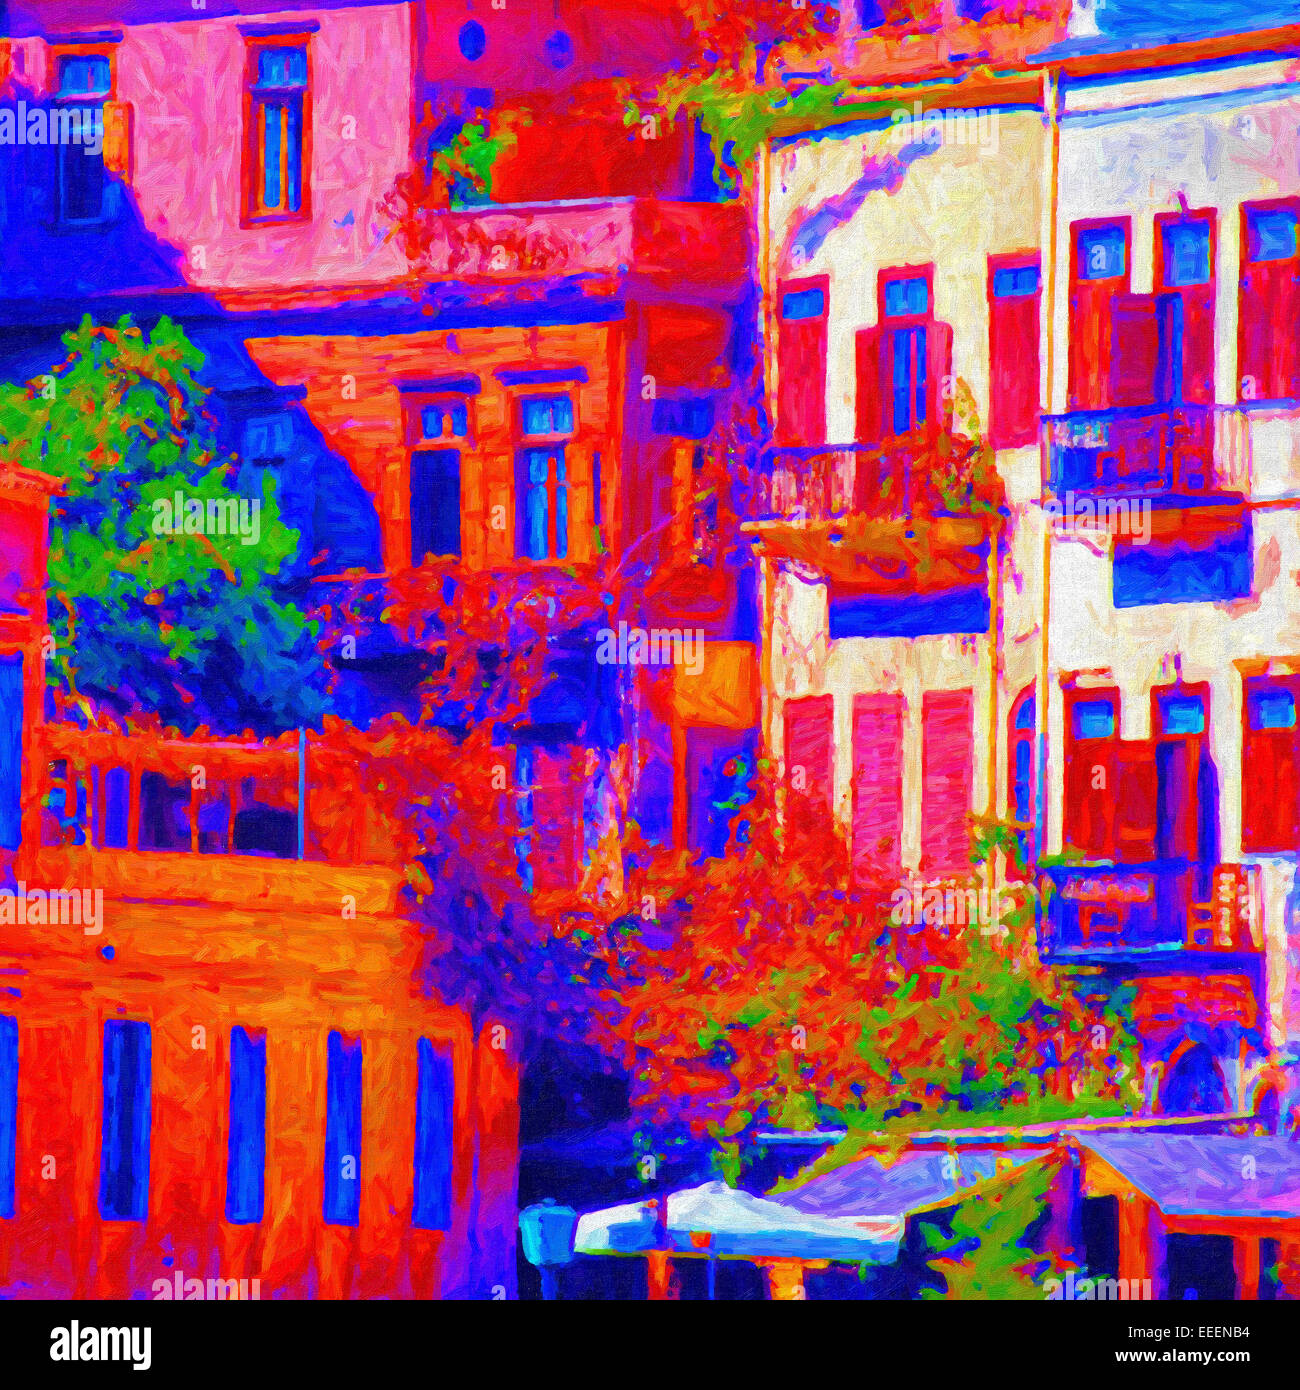 An abstract digital painting of the buildings in the Greek town of Chania. - Stock Image